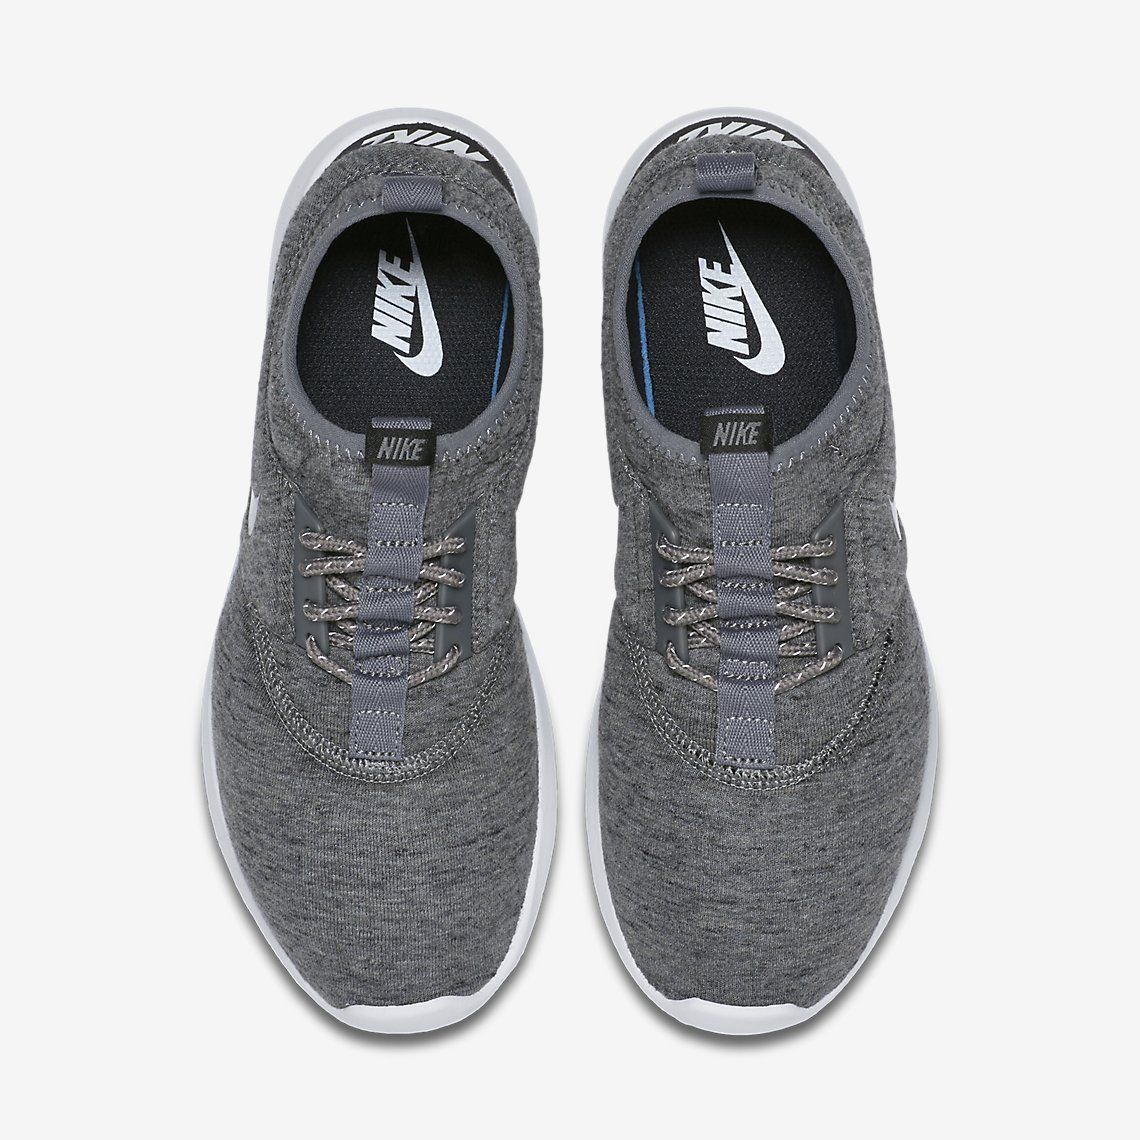 Nike Juvenate Fleece Women's Shoe.